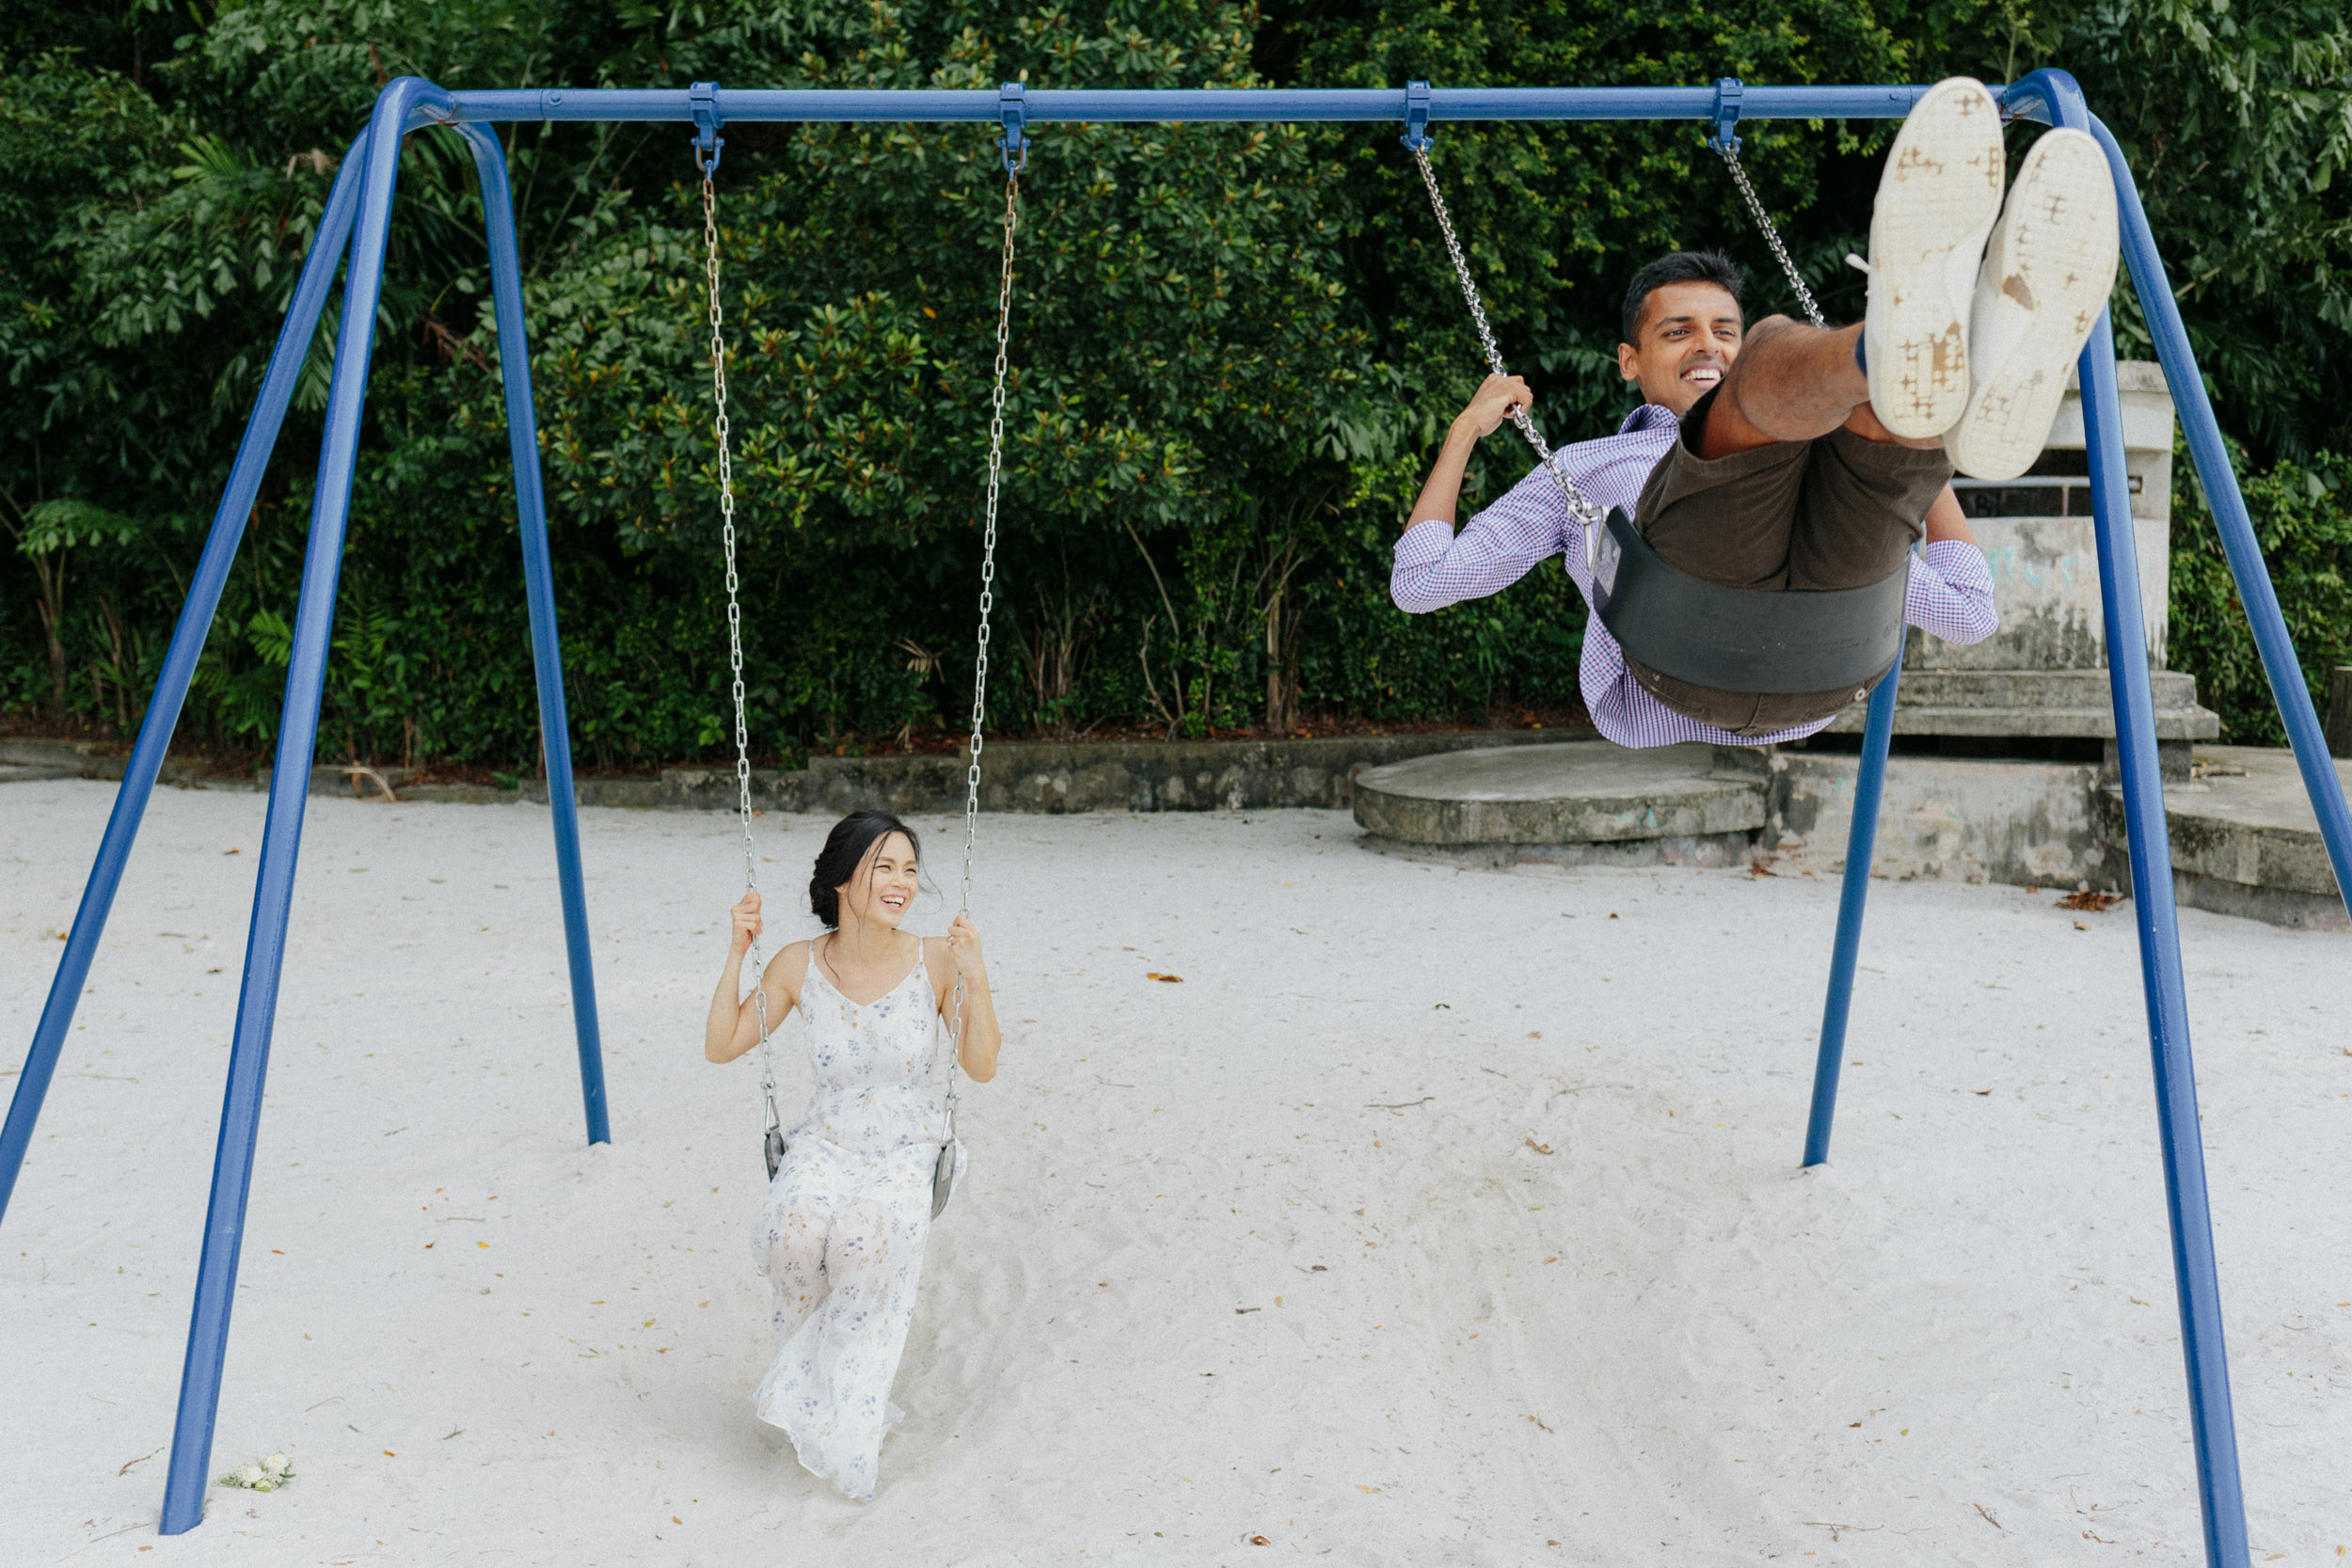 singapore-wedding-photographer-wemadethese-suriya-xinqi-27.jpg